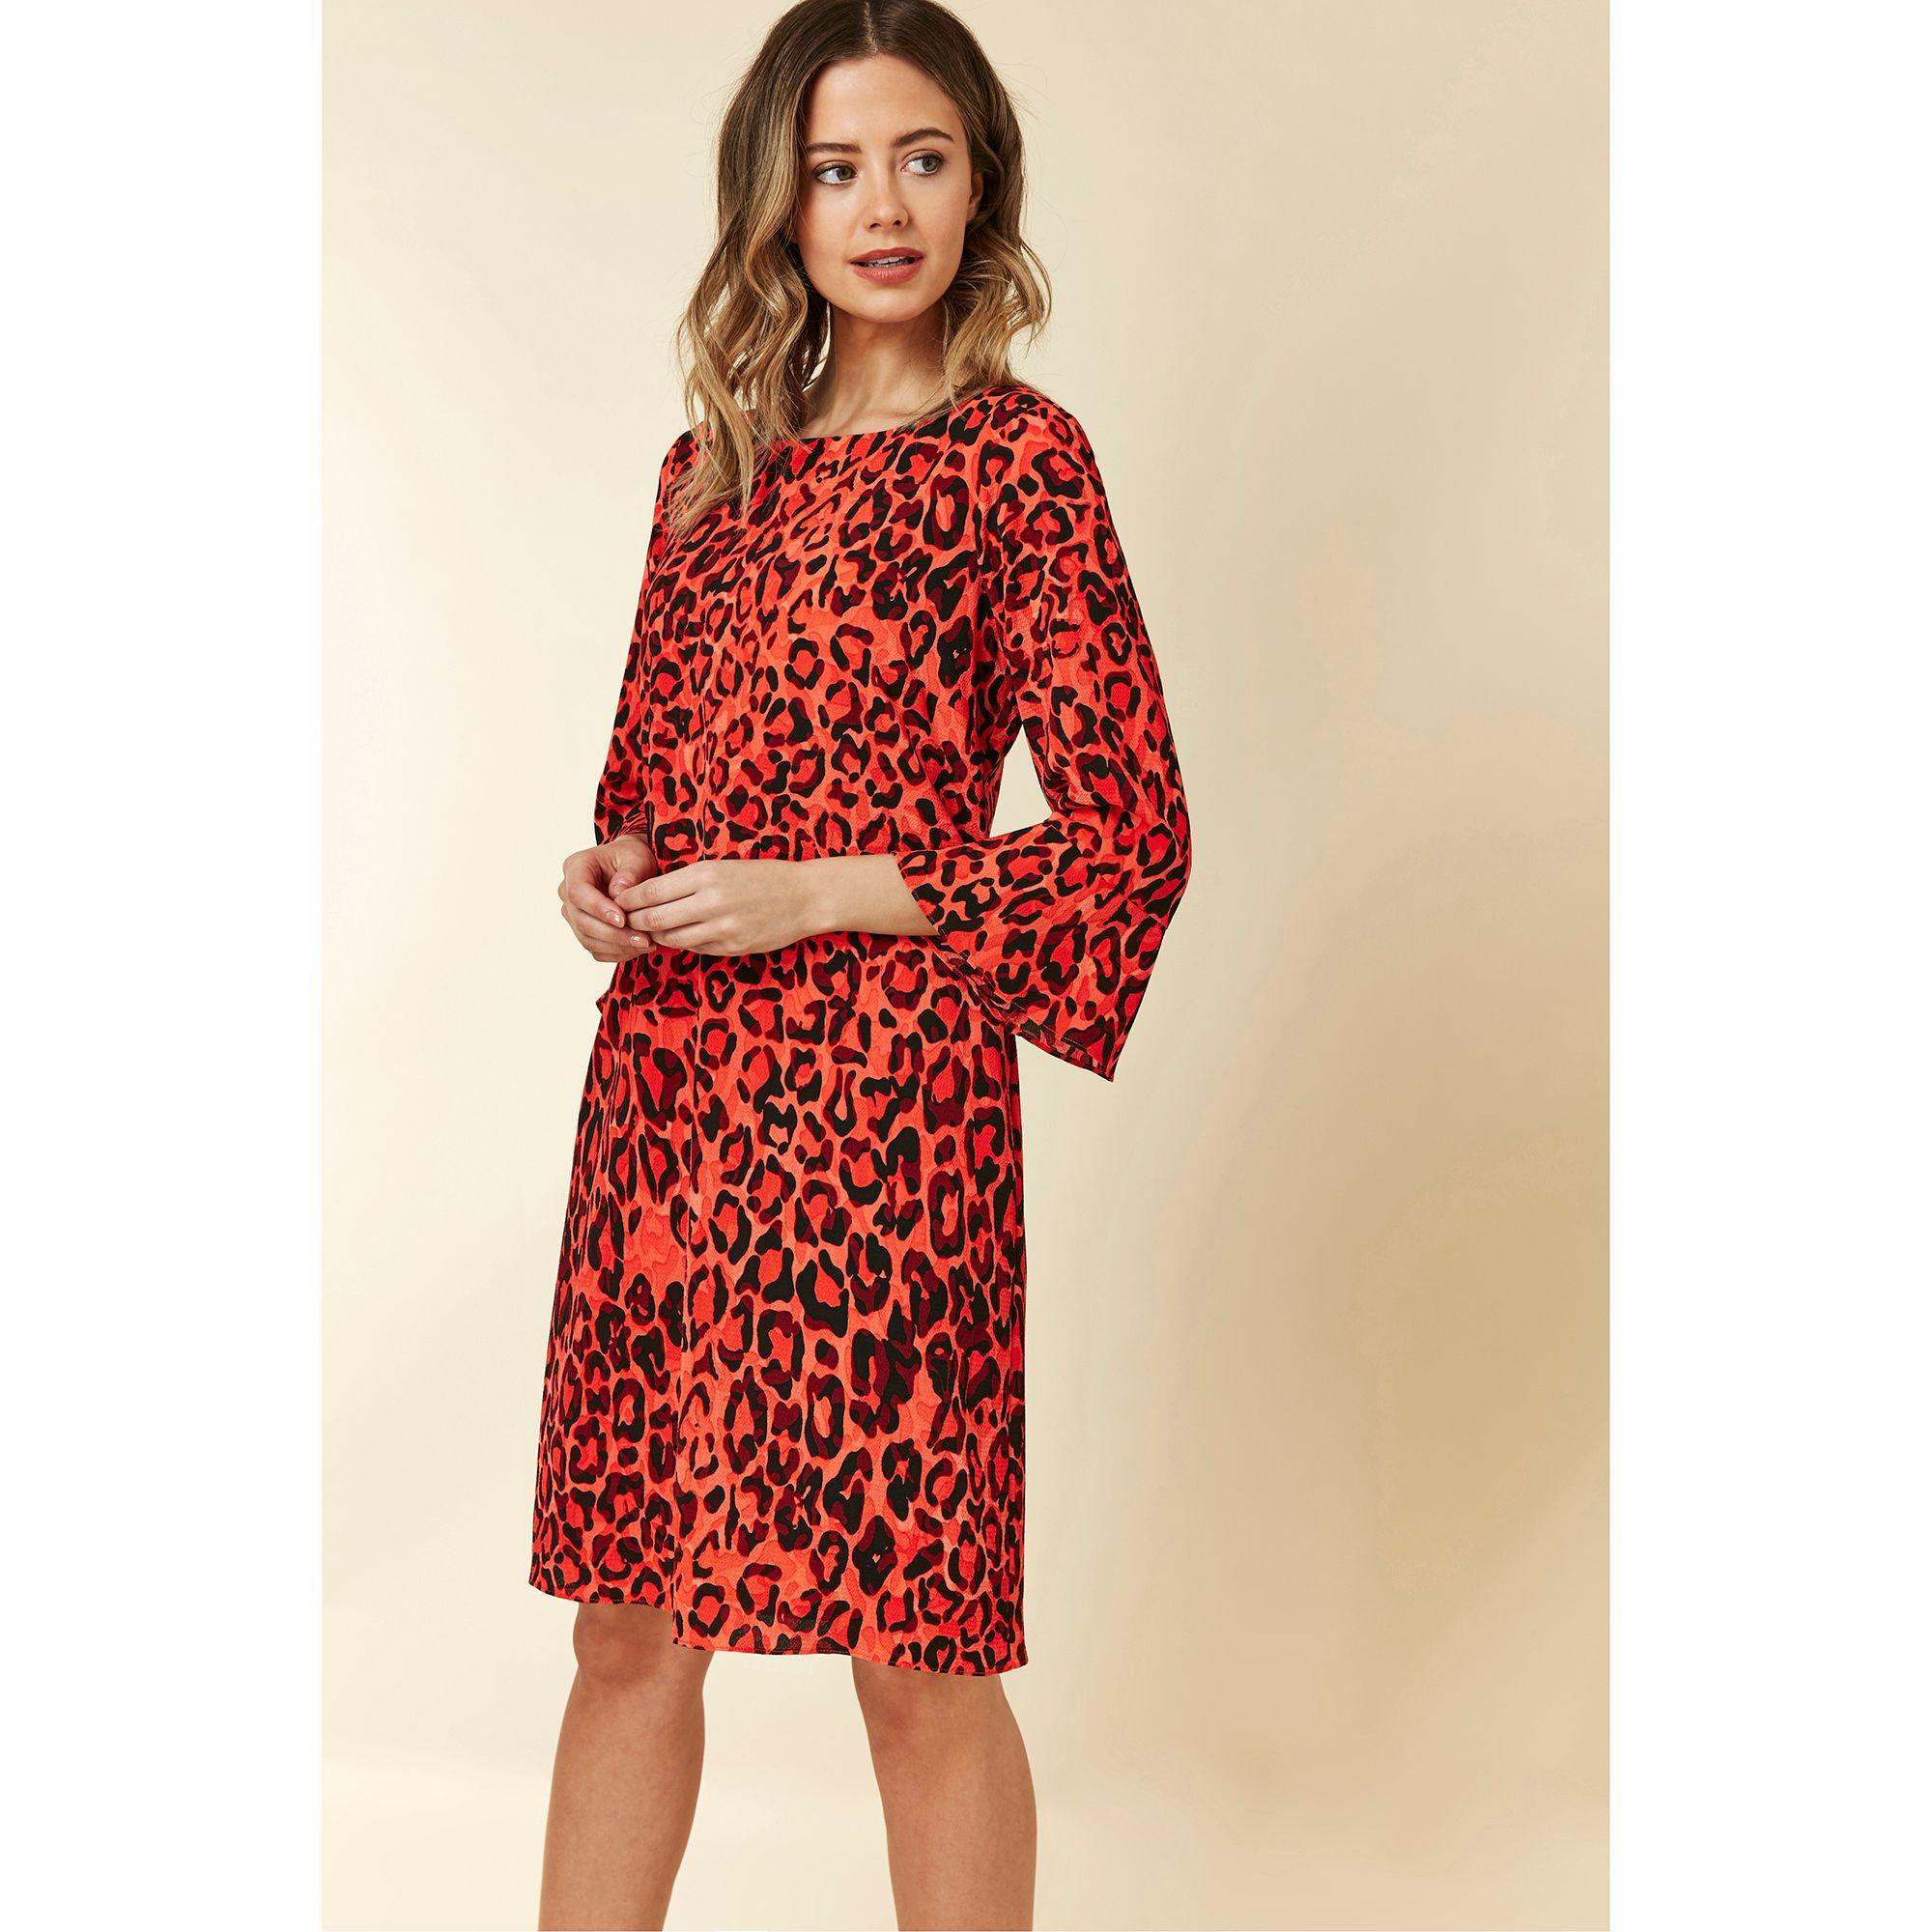 dc23bdf7d1b Wallis Petite Orange Animal Print Shift Dress in Orange - Lyst